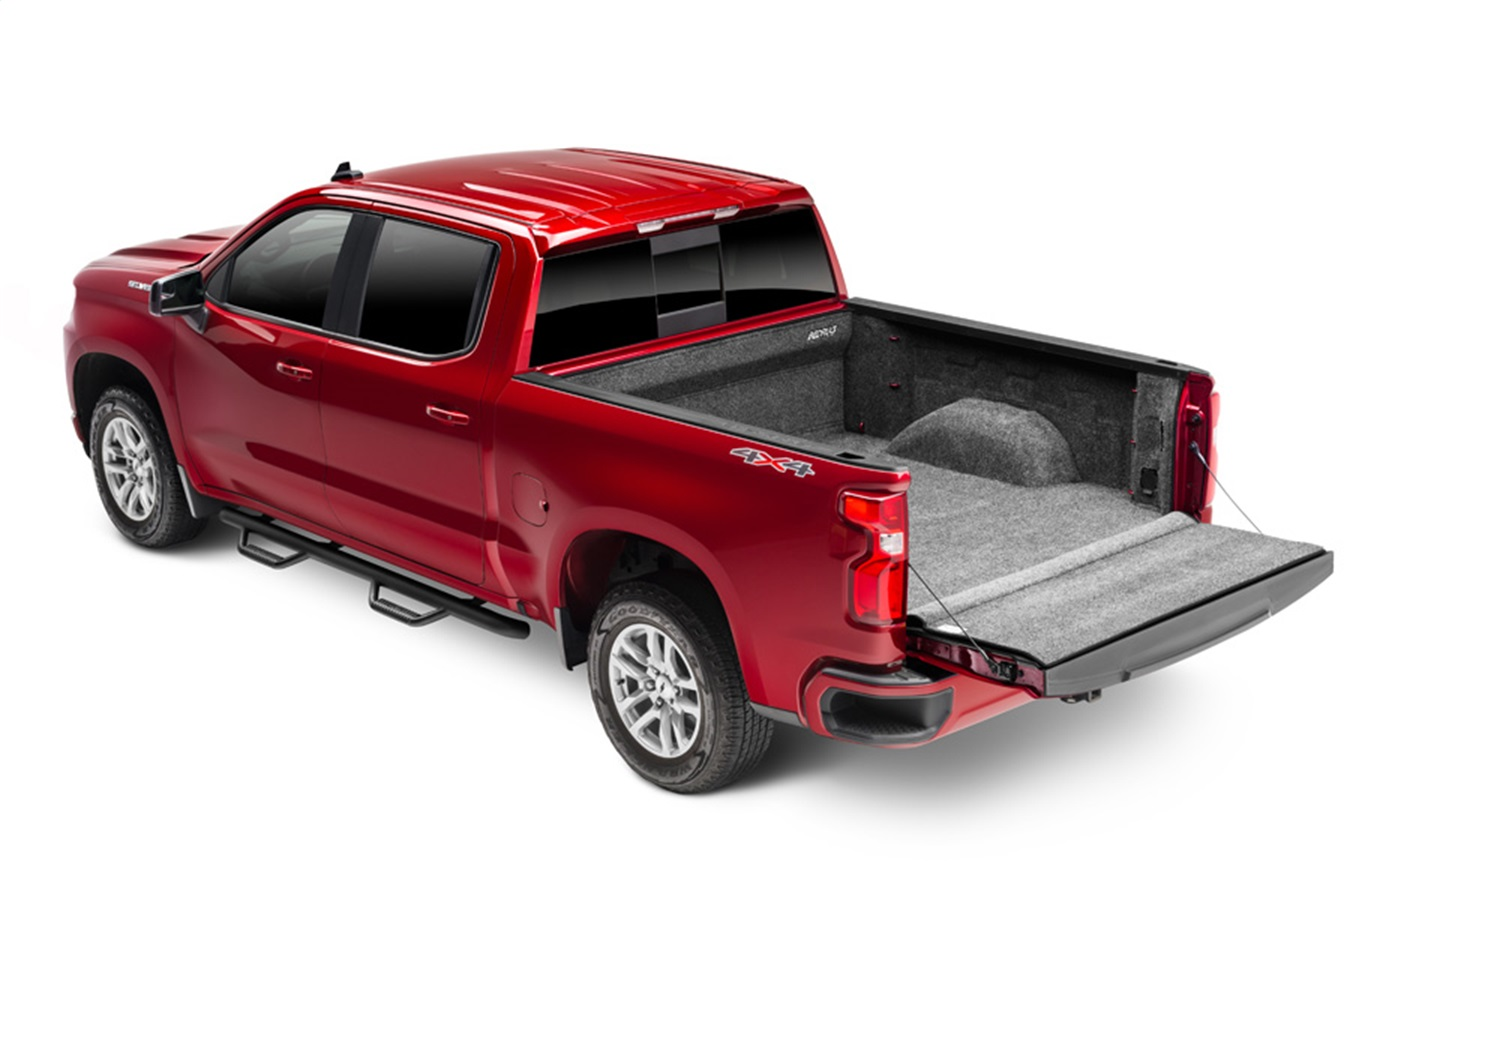 BedRugr Complete Truck Bed Liner, 3/4 in. Thick Floor, 1/4 in. Thick Side Walls, Incl. Bulkhead And Tailgate, Fits Vehicles w/o Multi-Pro Tailgate